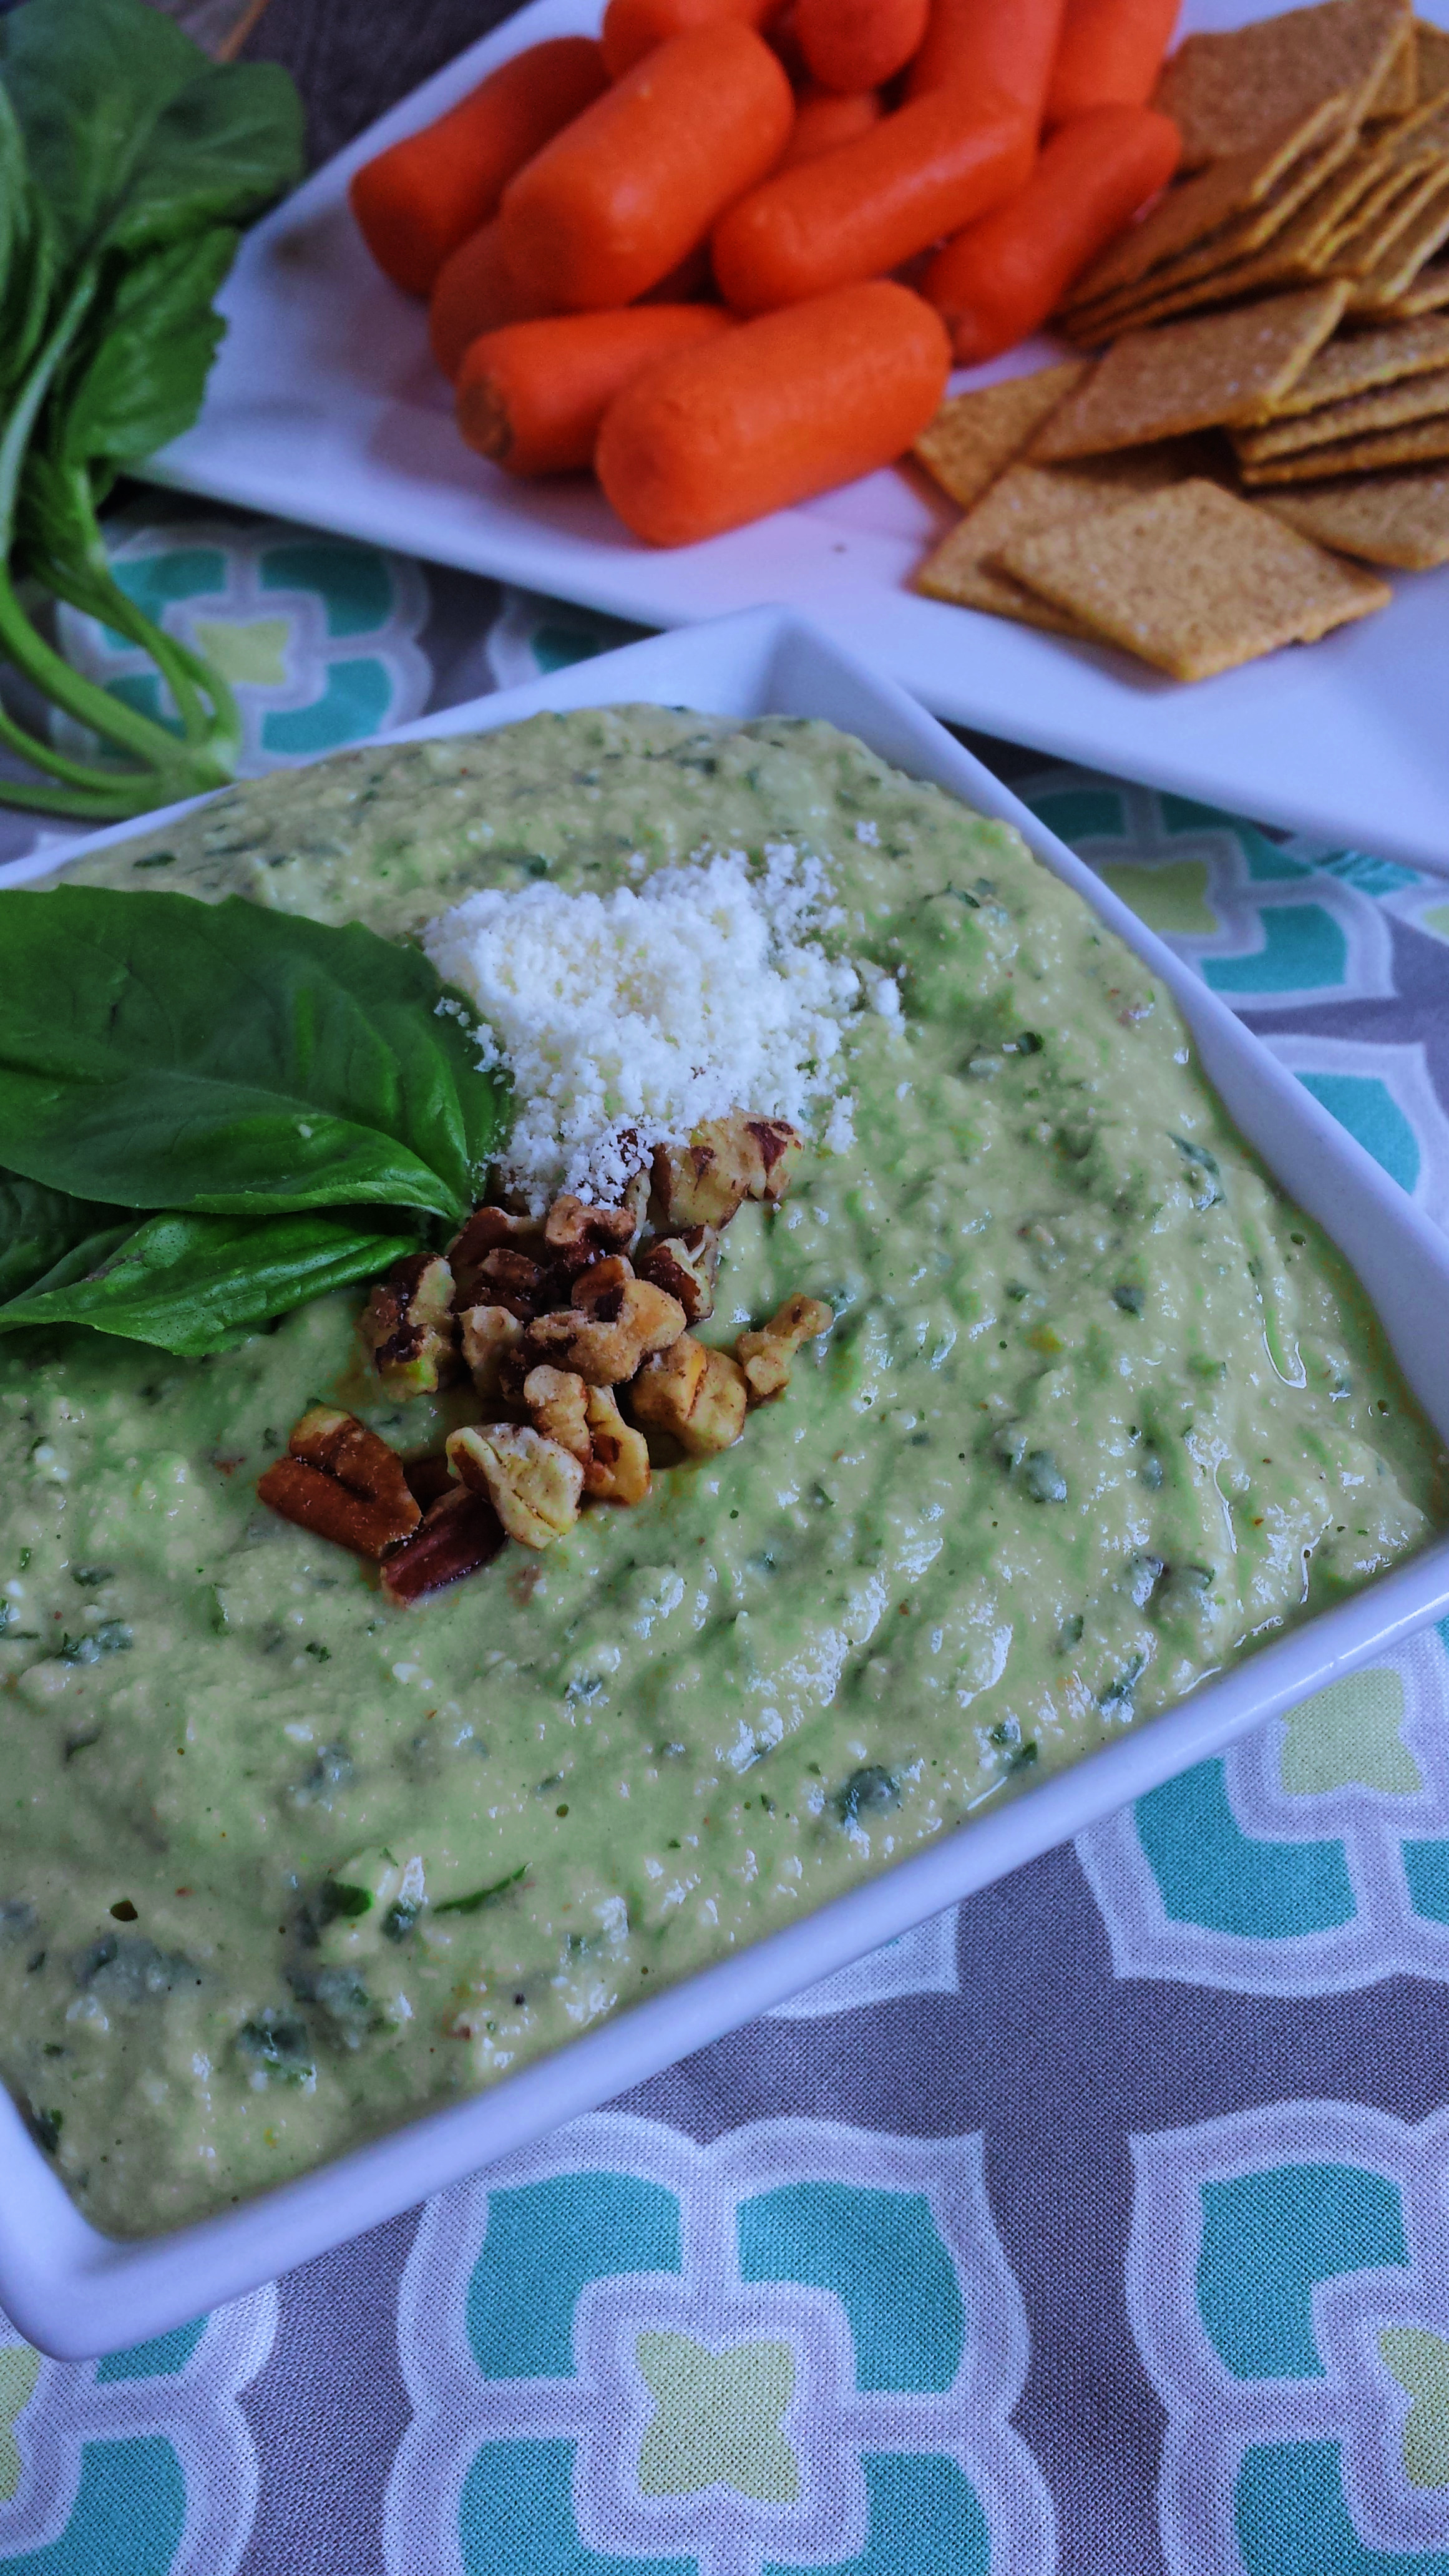 Zoes Kitchen Pesto Hummus Recipe